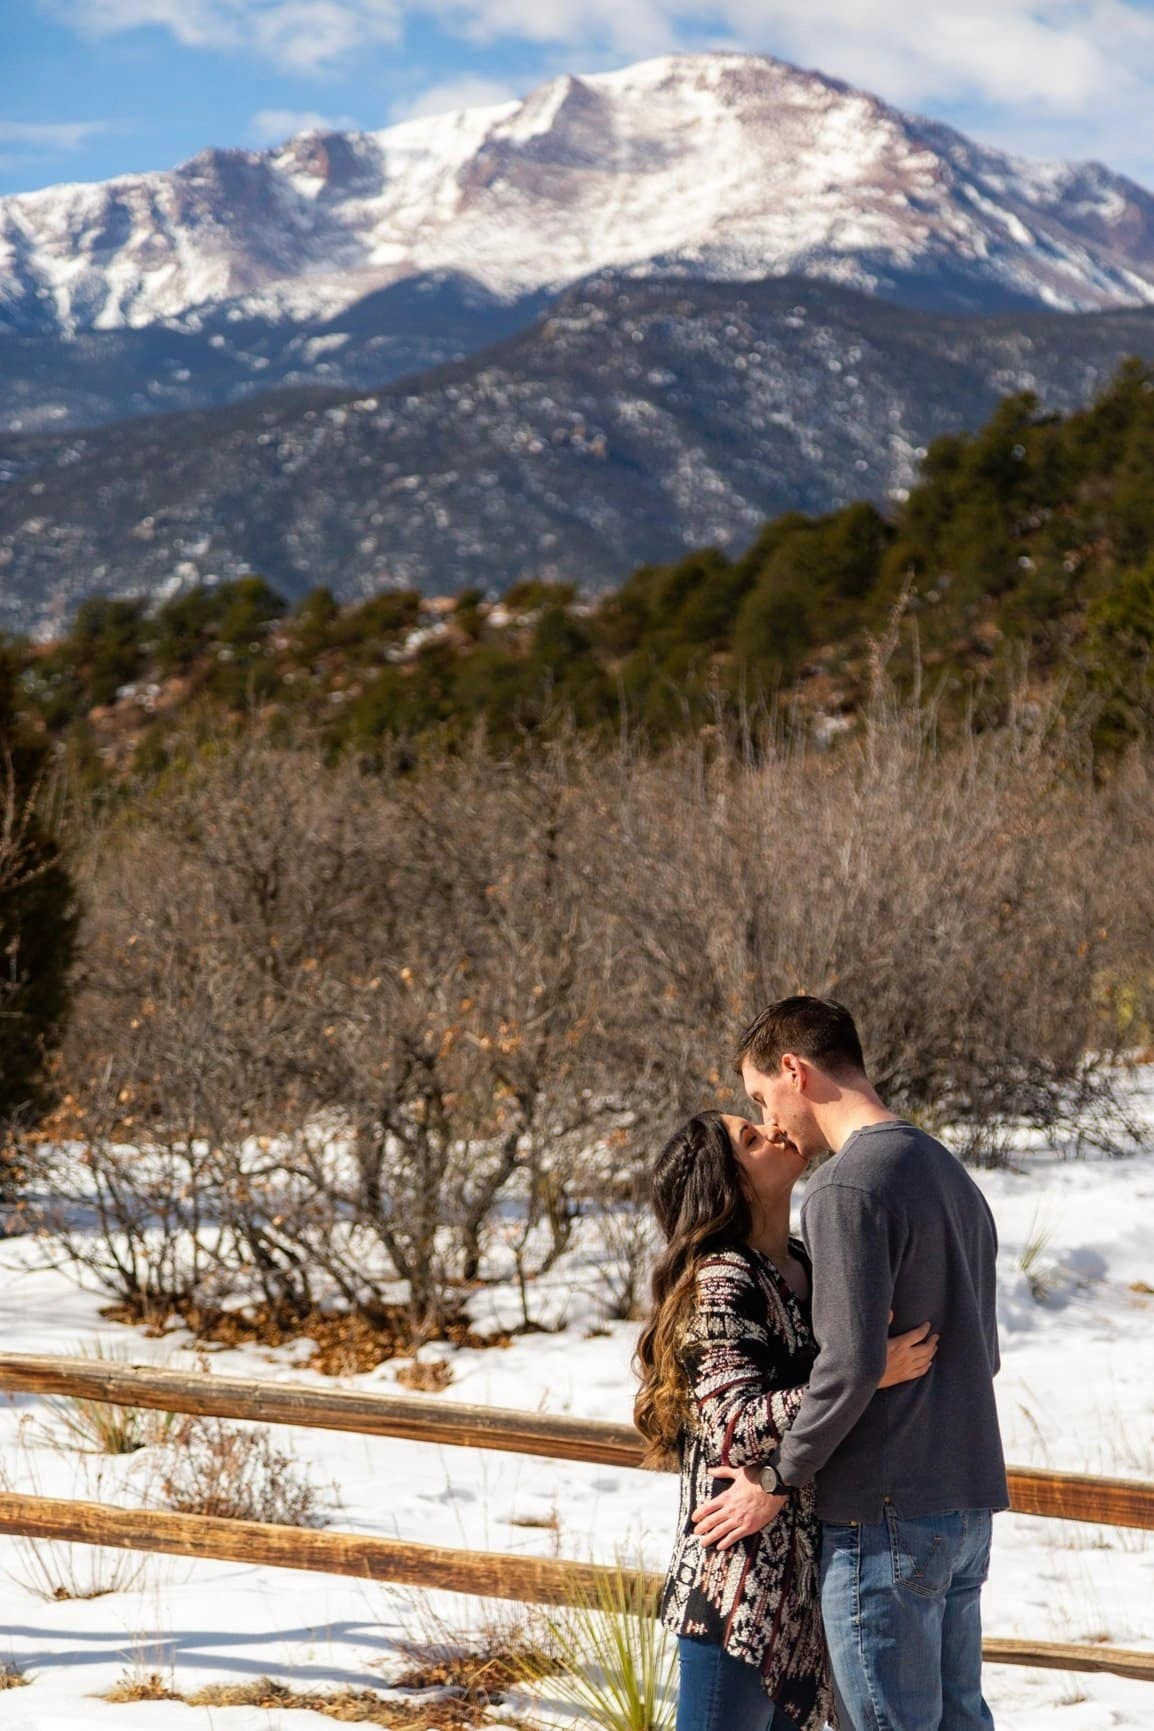 Couple embraces while Pikes Peak looks on in the background. Garden of the Gods is a great place for adventure with the one you love most